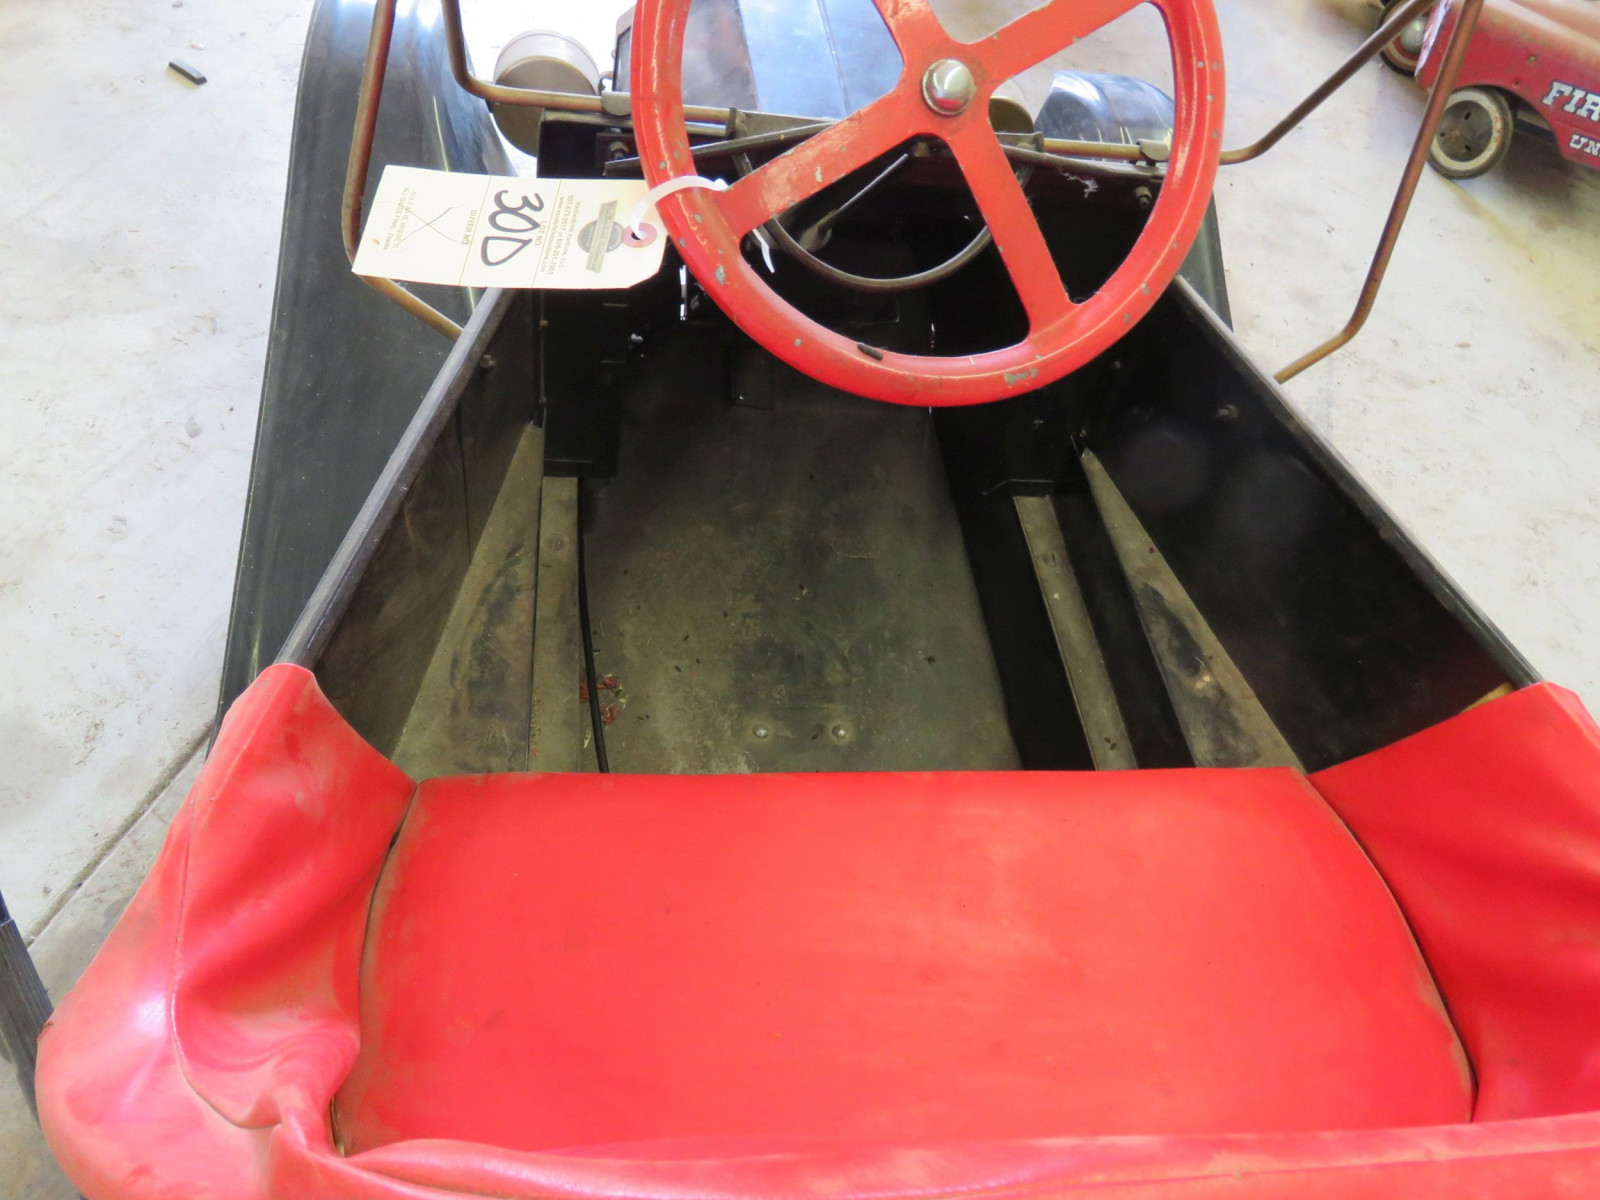 Ford Model T Touring Car Gas Powered Child's or Shriner Car - Image 7